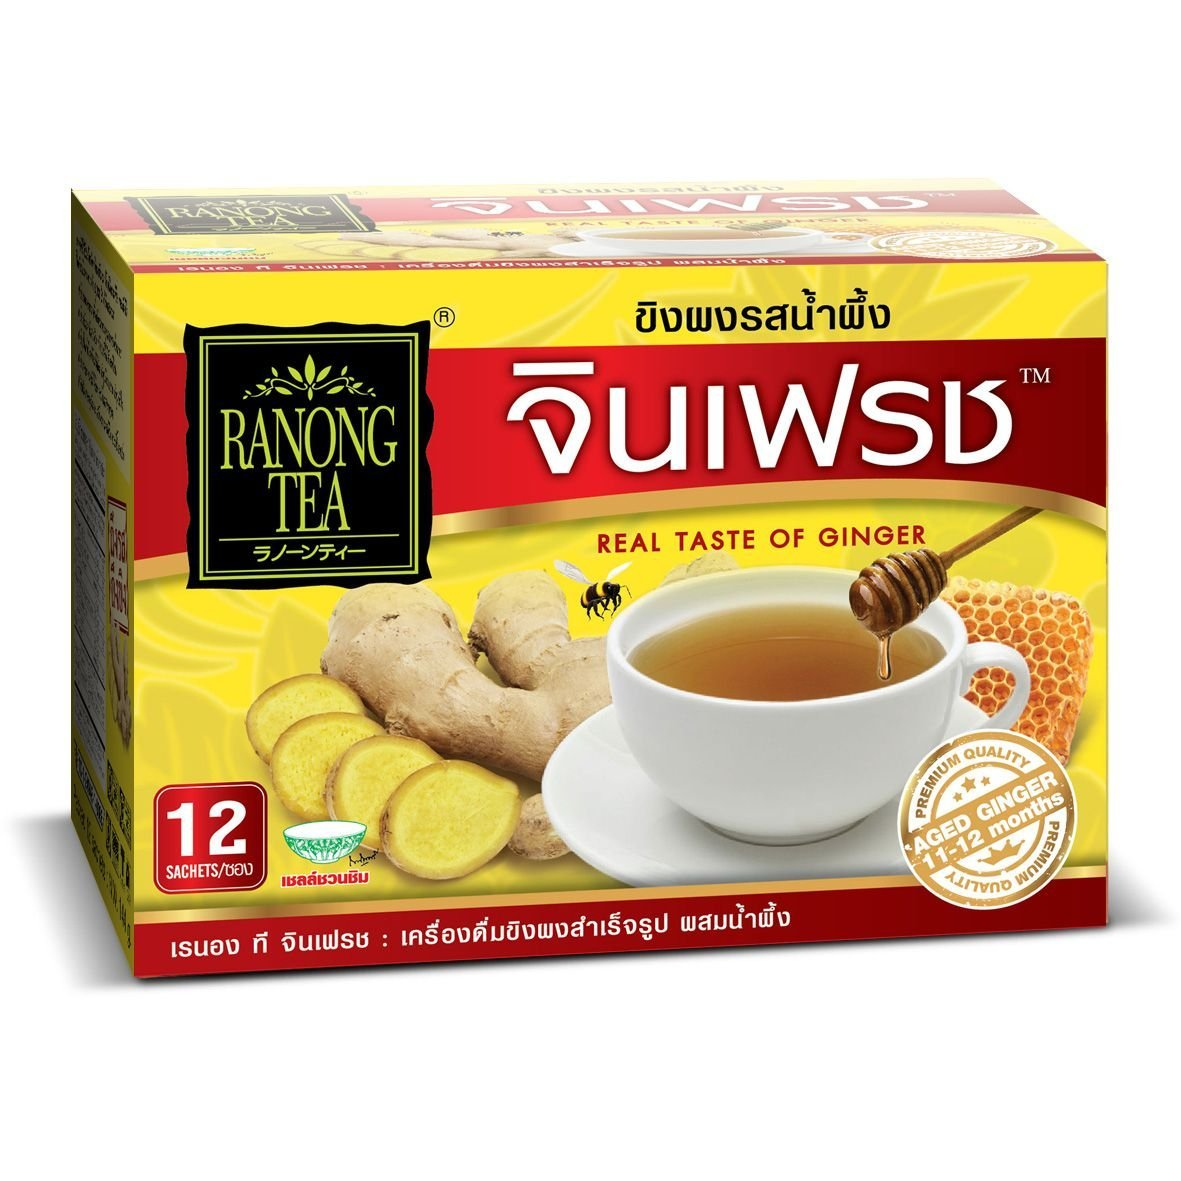 Ranong Tea Ginfresh, Instant Ginger Drink, Natural Honey Ginger, net